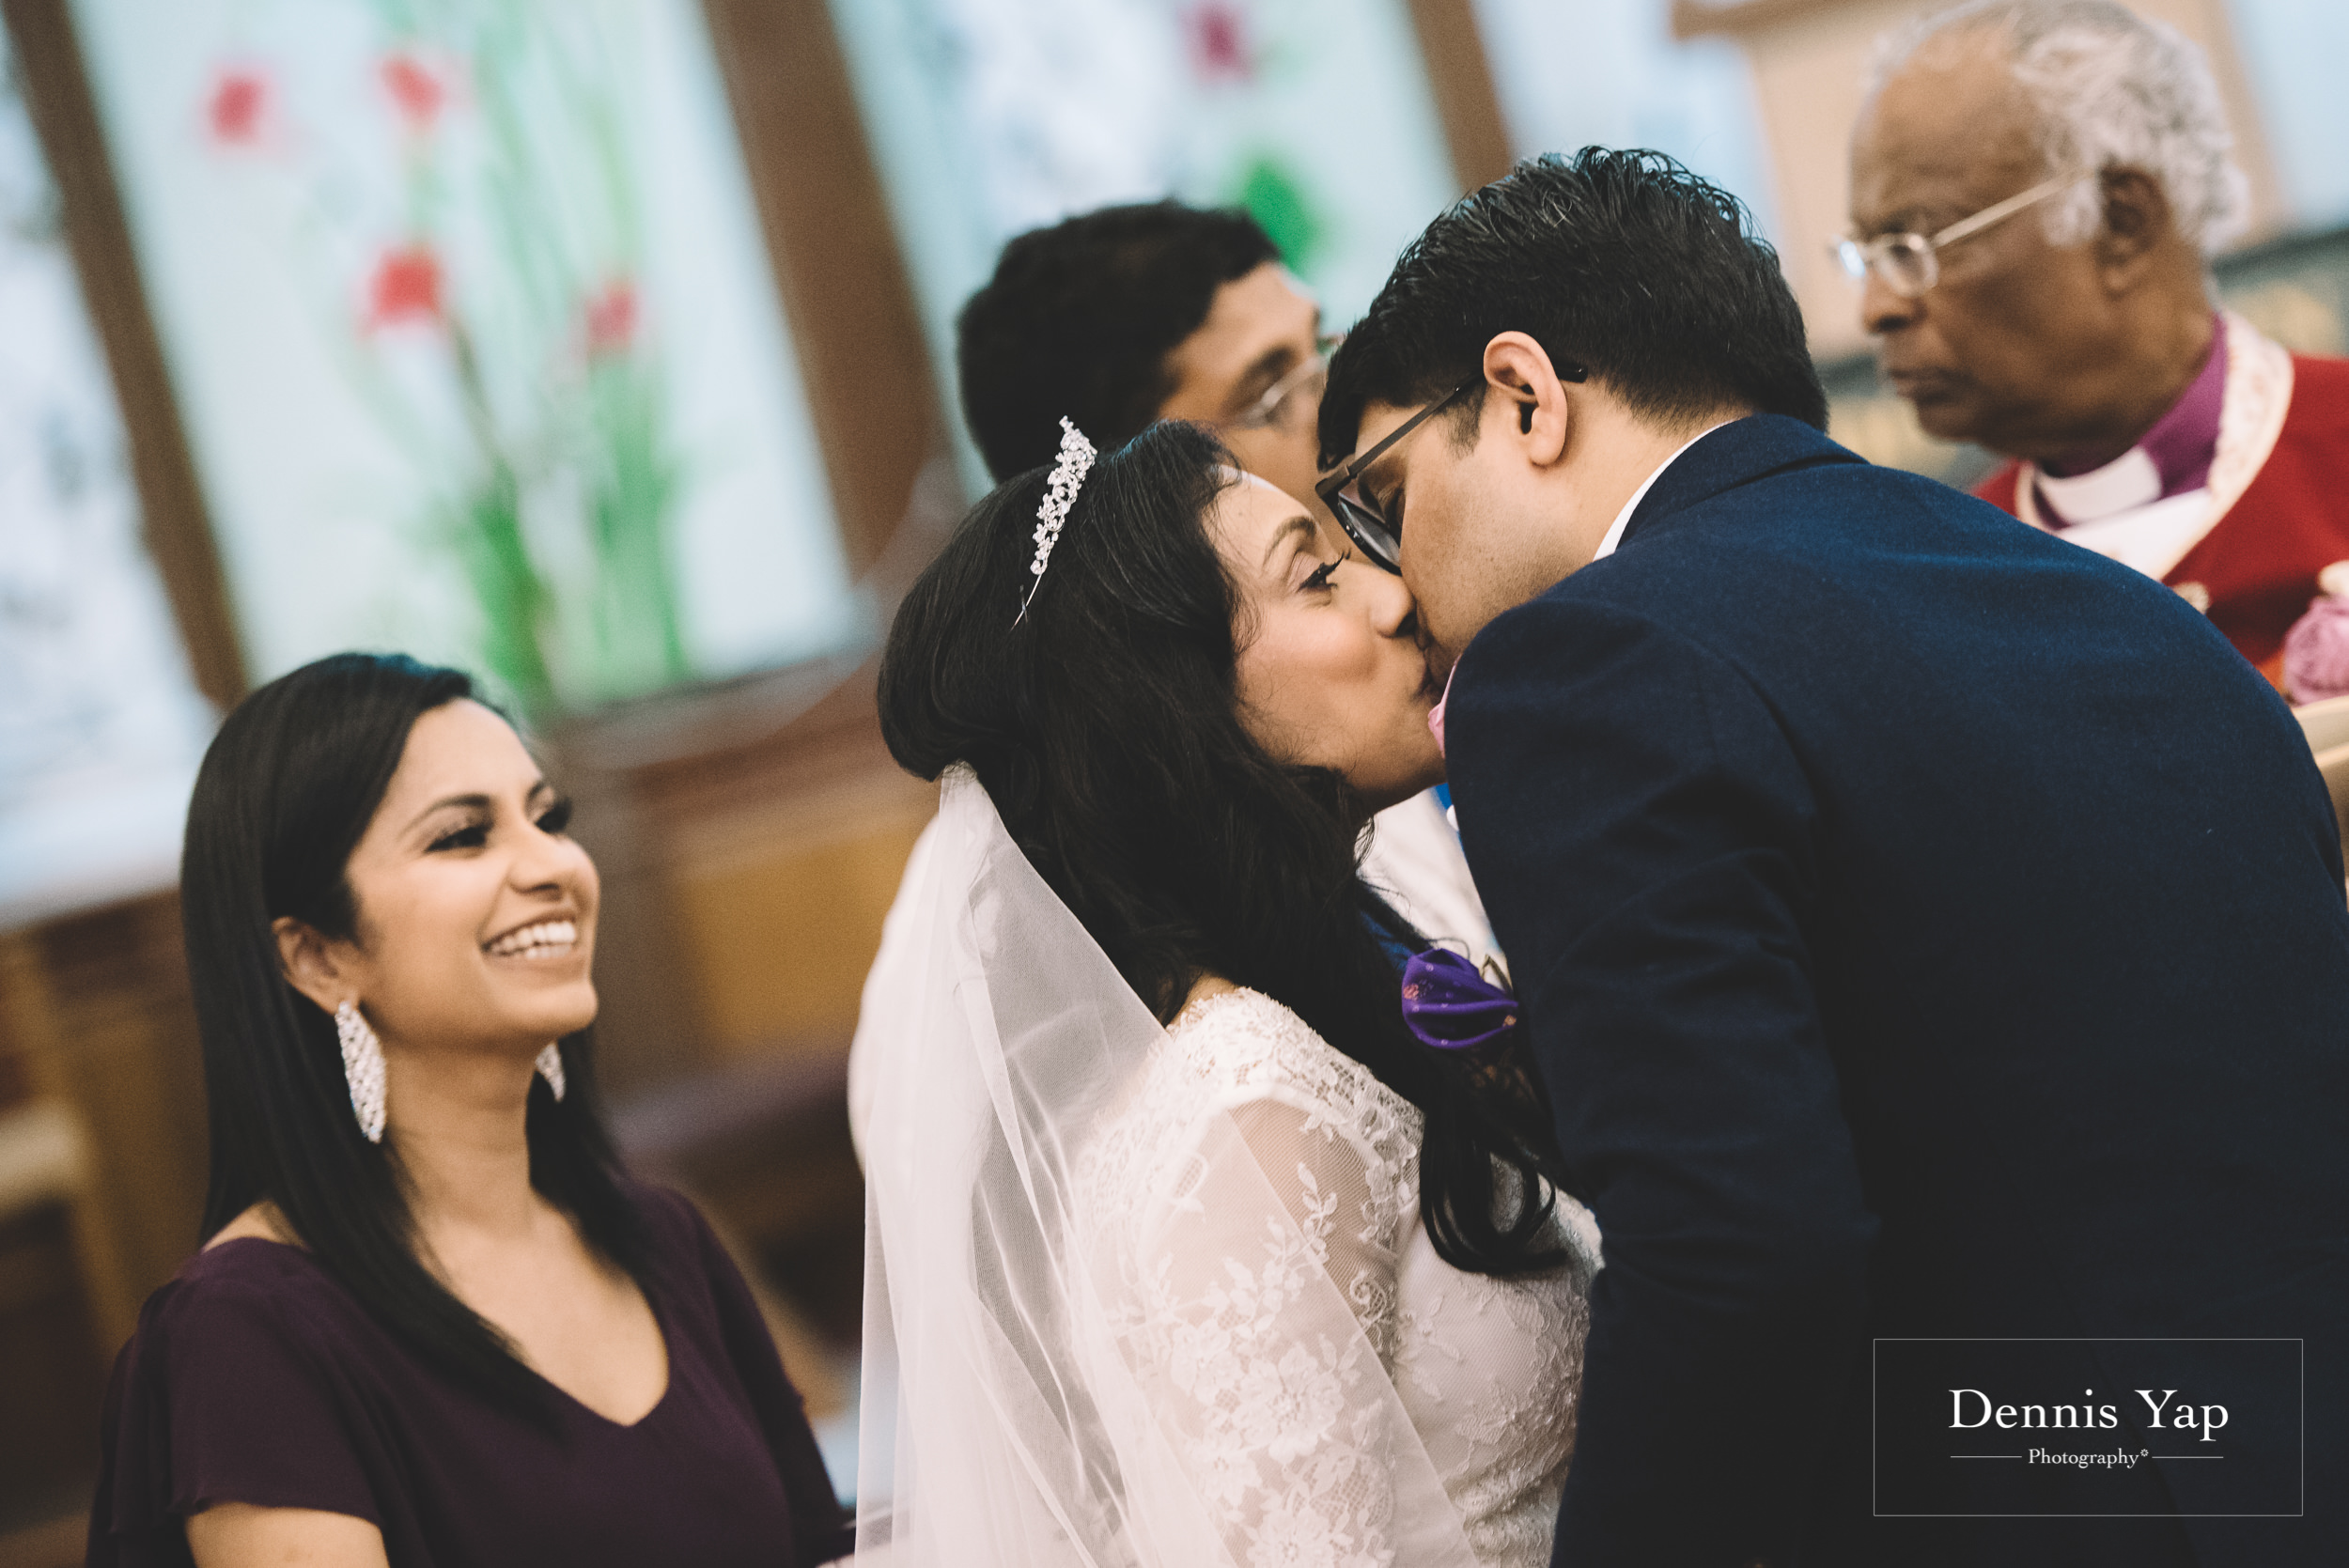 arun angela church wedding st peter bangsar dennis yap photography-24.jpg